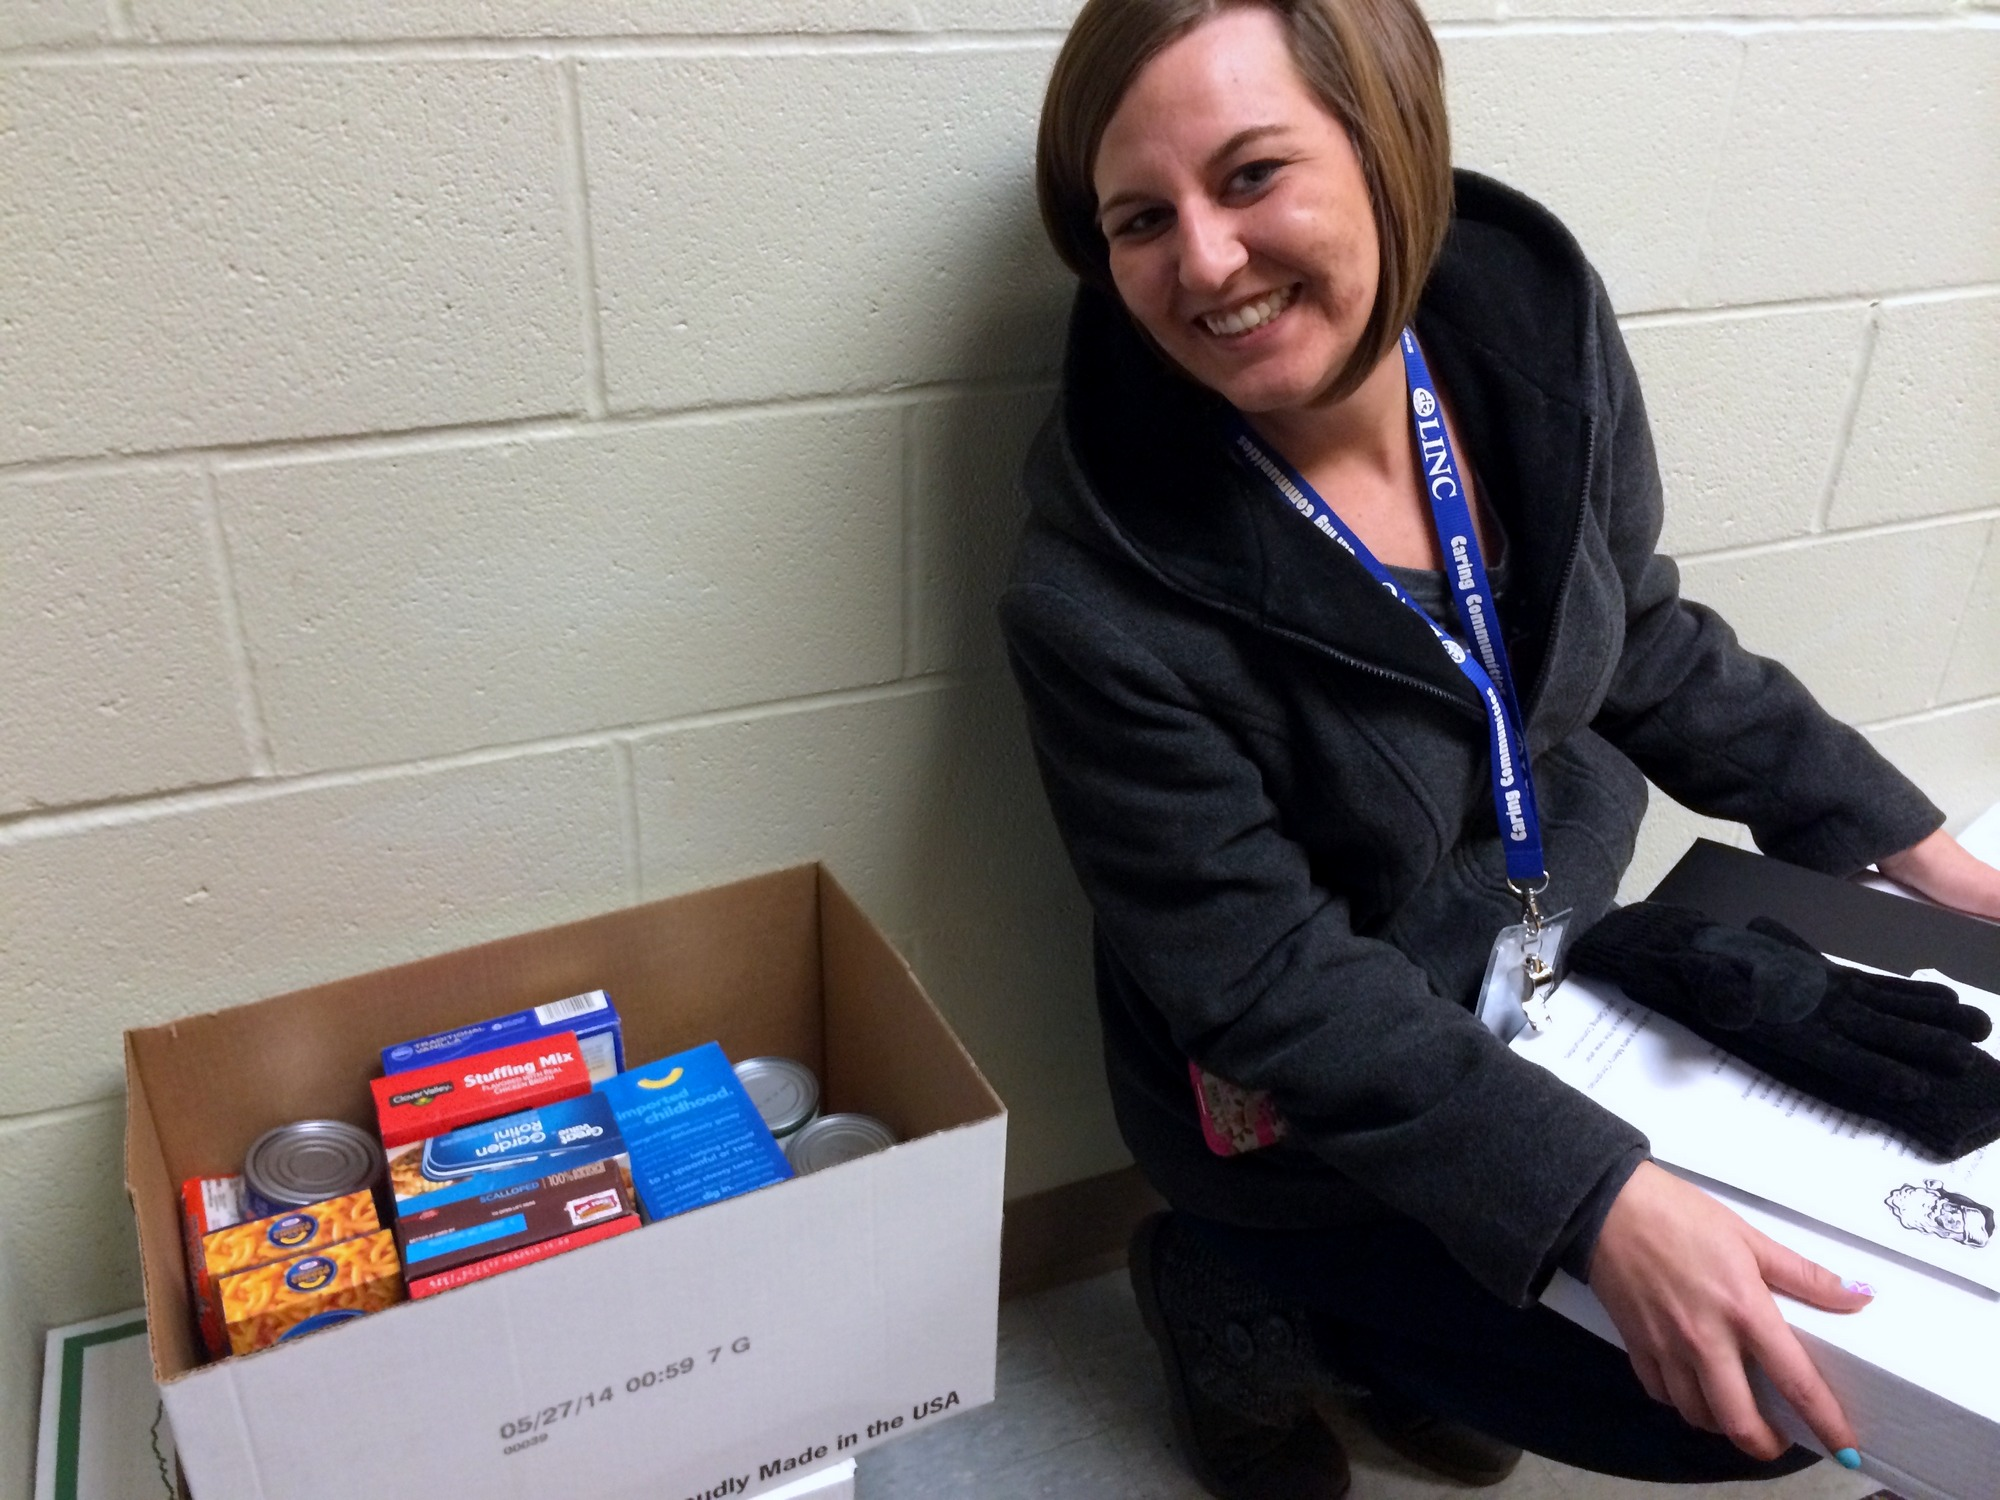 Kristin Potter, LINC Site Coordinator at Indian Trails Elementary, worked to supply food and gifts to Indian Trails families during the holidays.